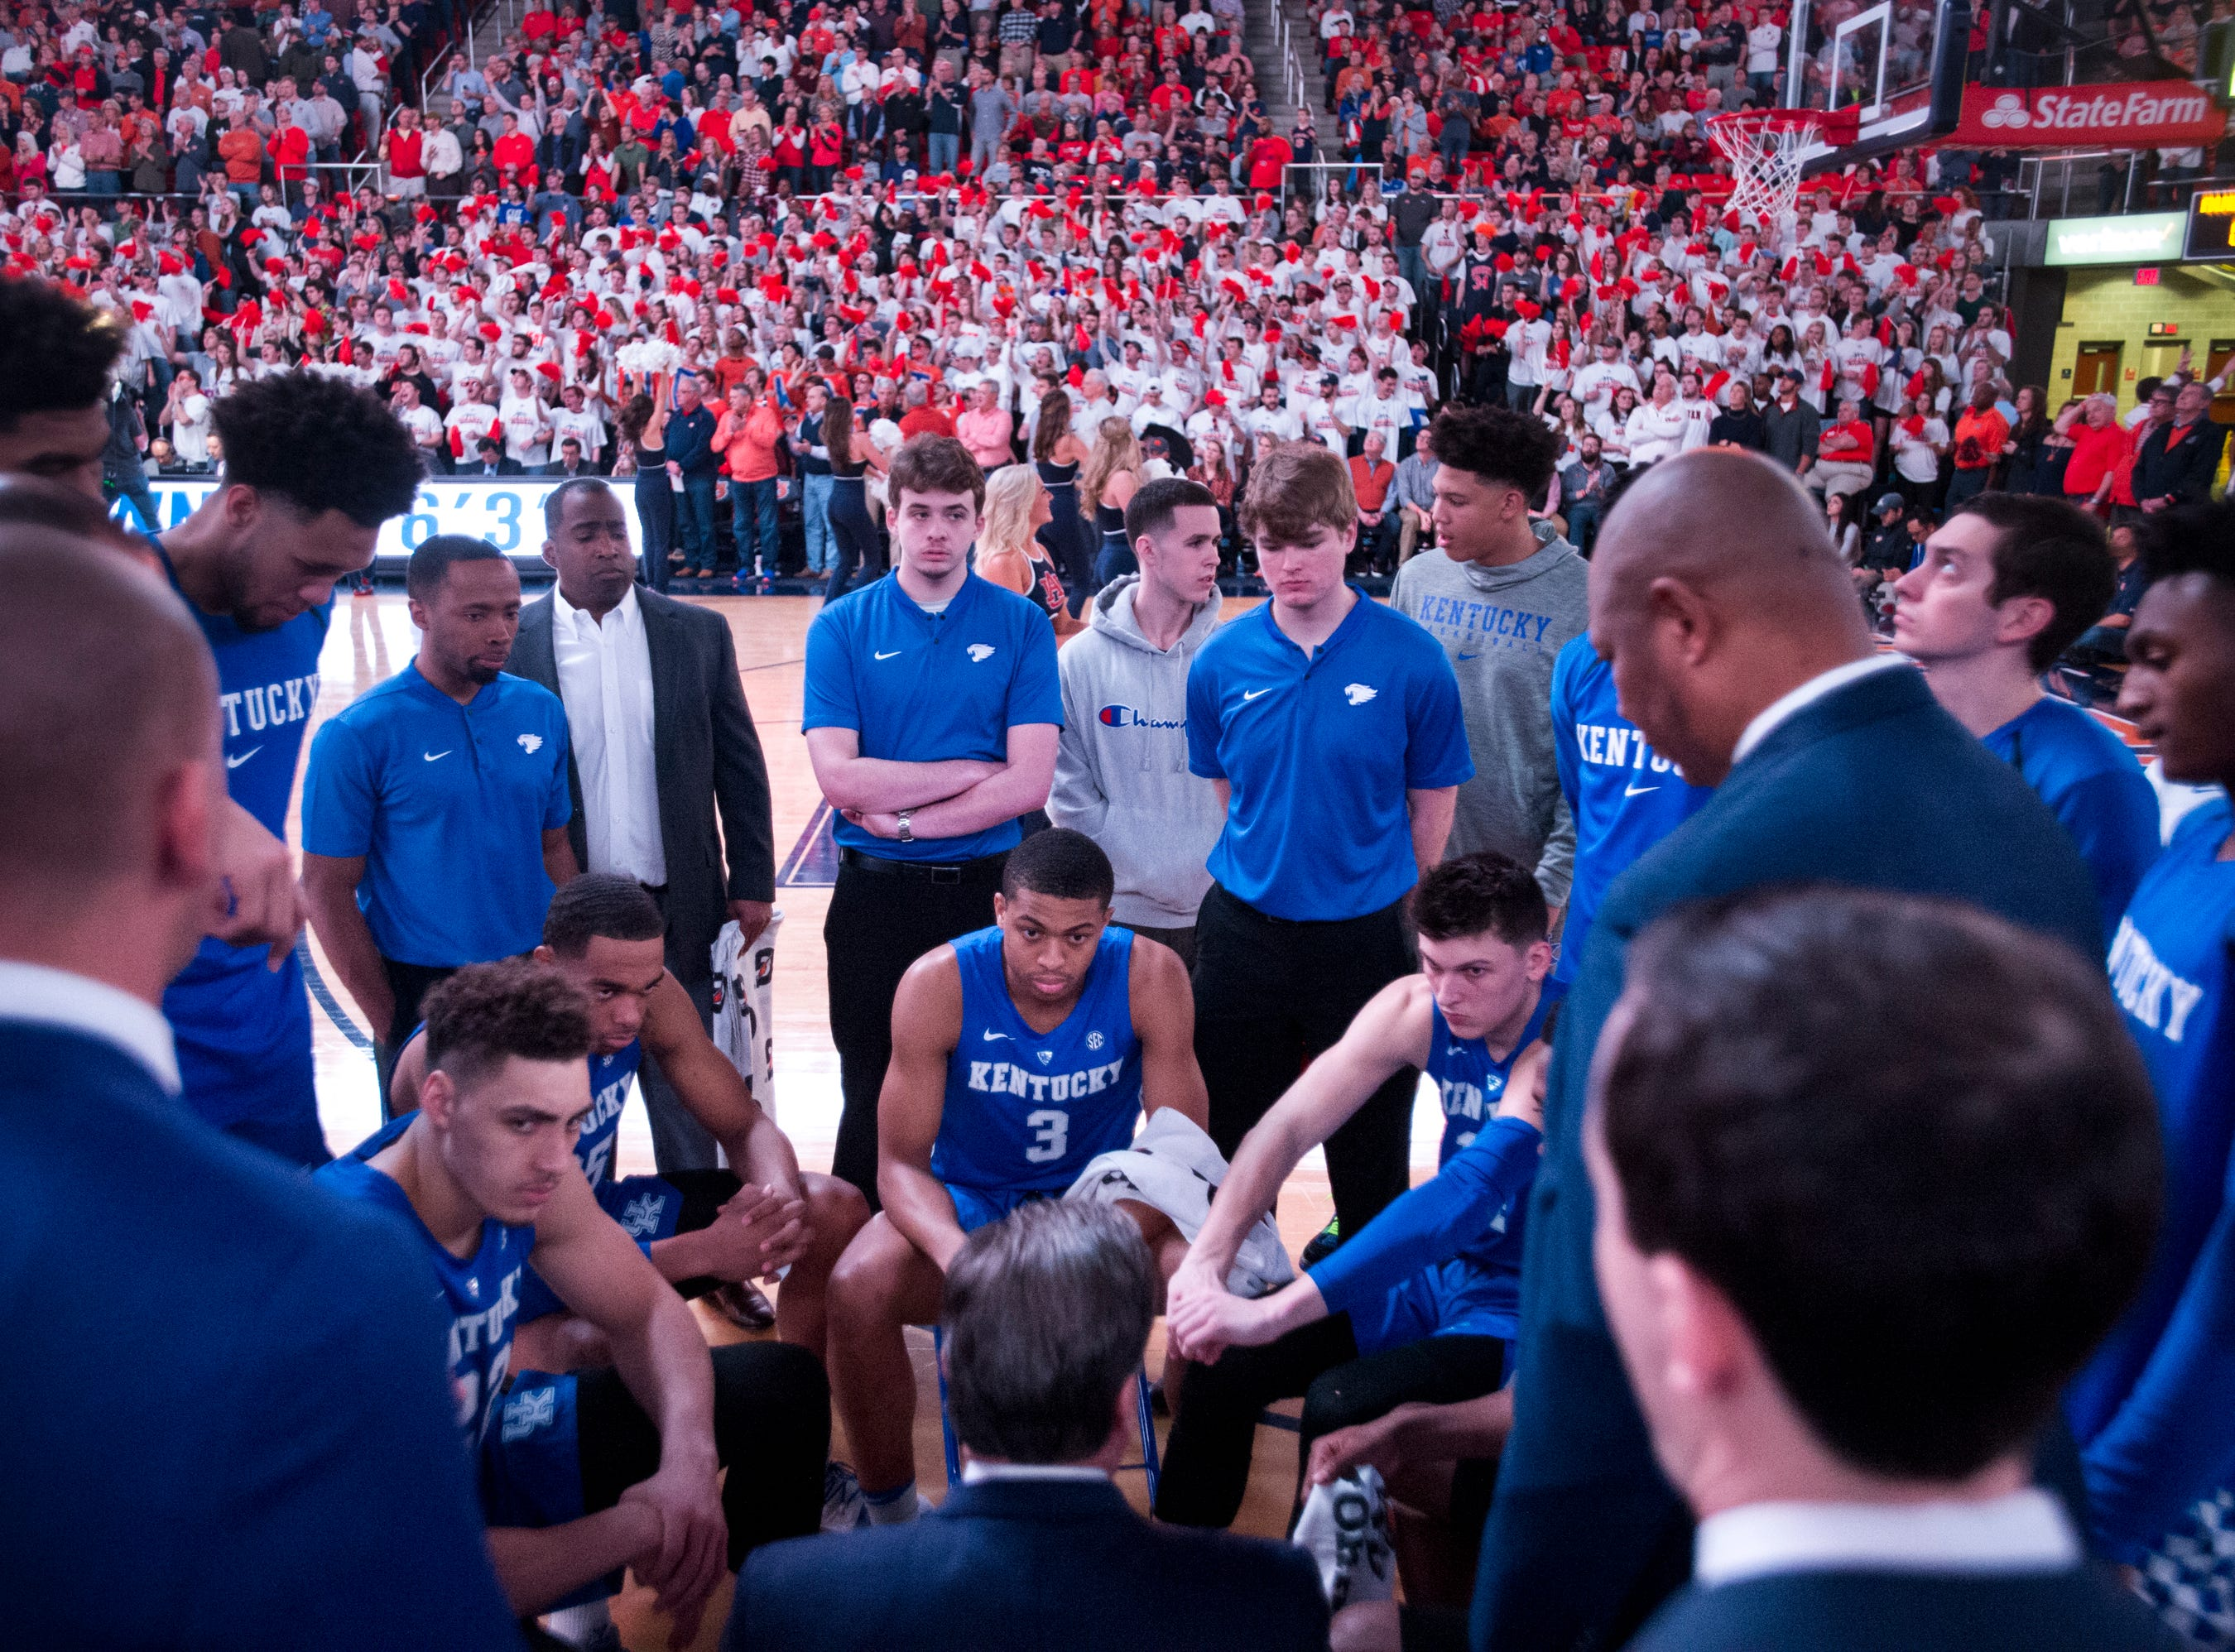 Kentucky head coach John Calipari huddles with his team before the game at Auburn Arena in Auburn, Ala., on Saturday, Jan. 19, 2019. Kentucky leads Auburn 35-27 at halftime.